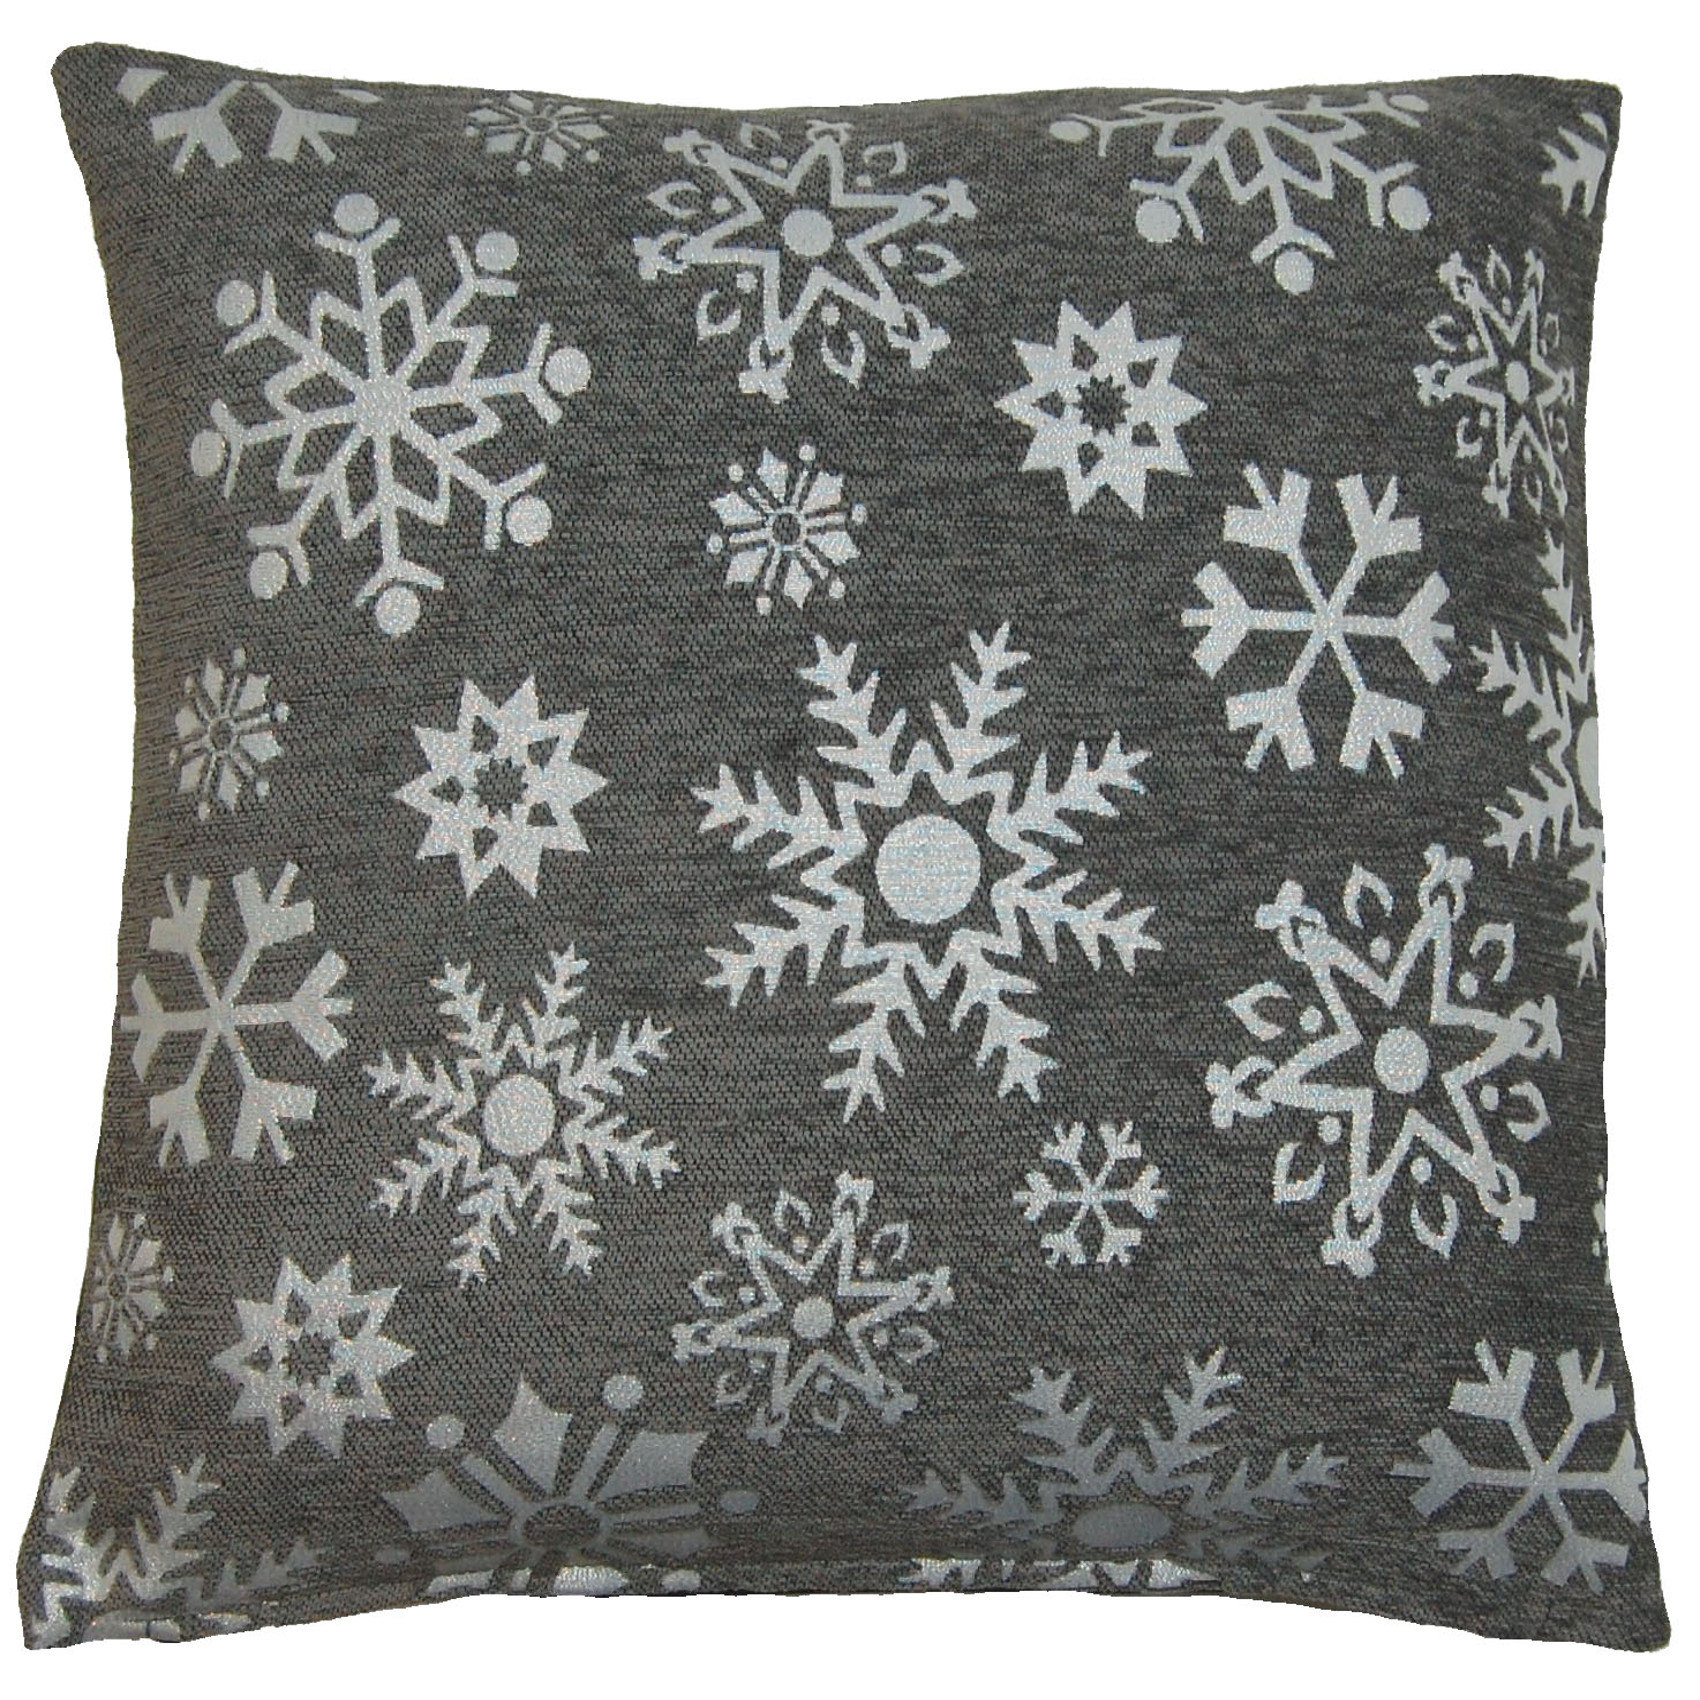 2 X Cushion Covers Sparkly Reindeer Snowflake Festive